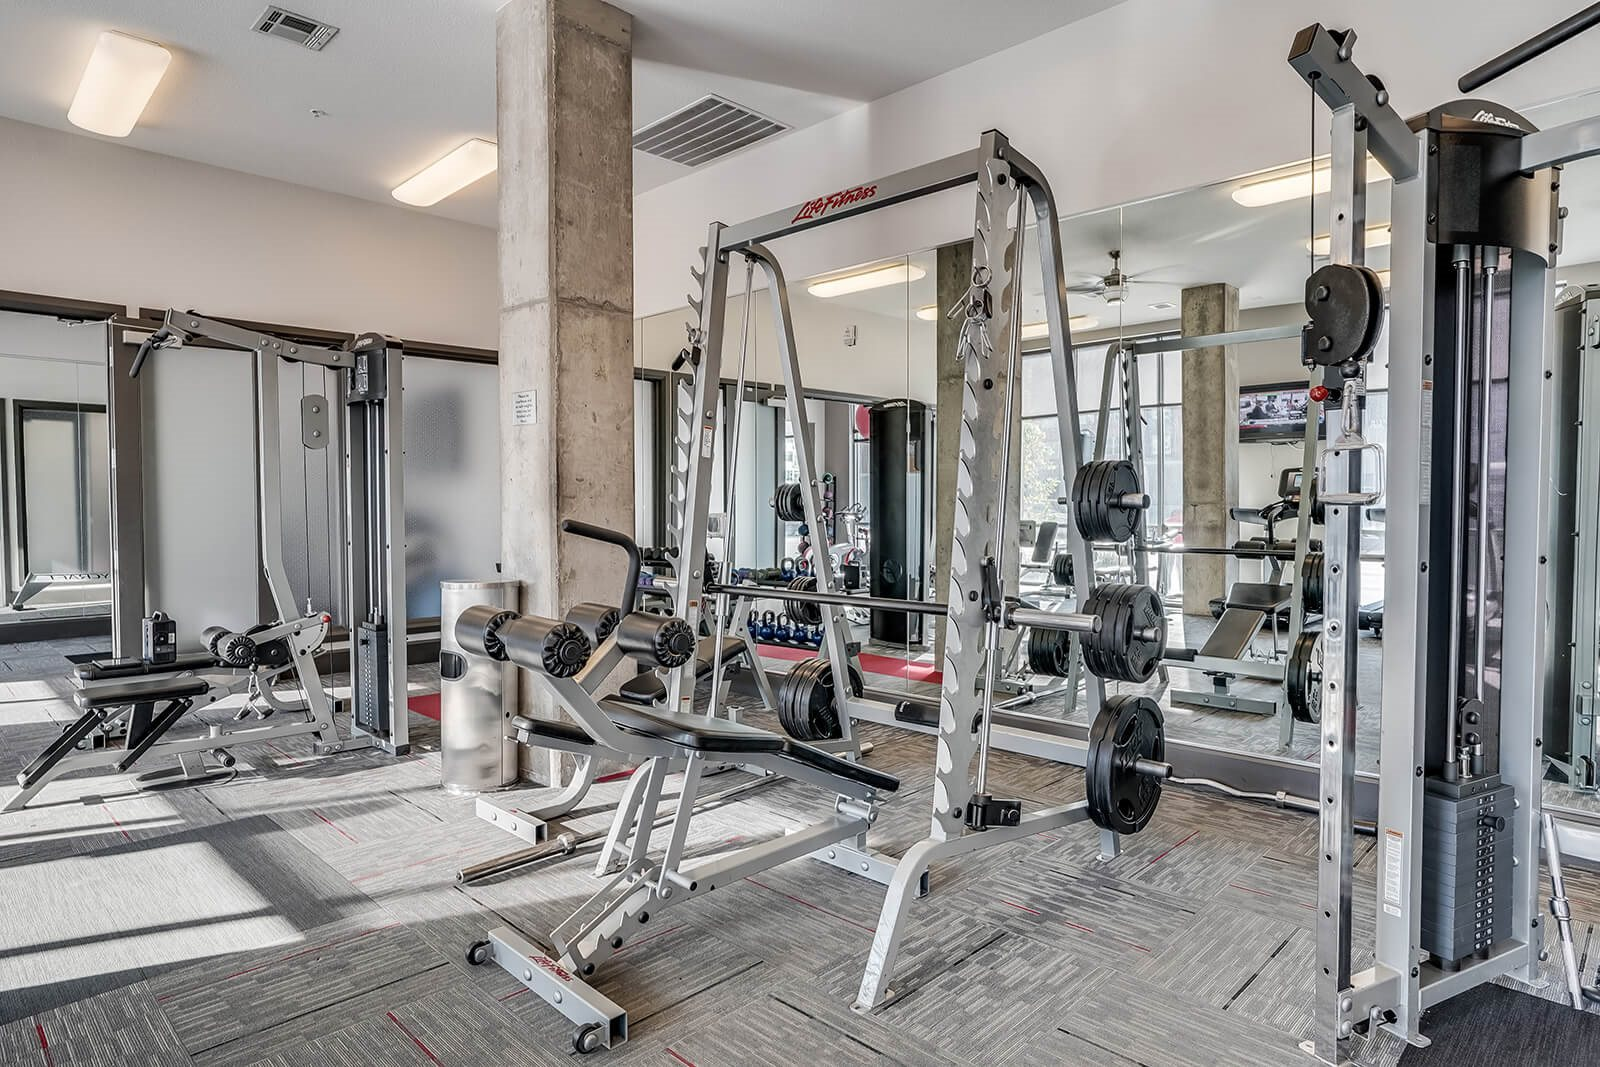 24-Hour, State-of-the-Art Fitness Center at Windsor at Broadway Station, Colorado, 80210